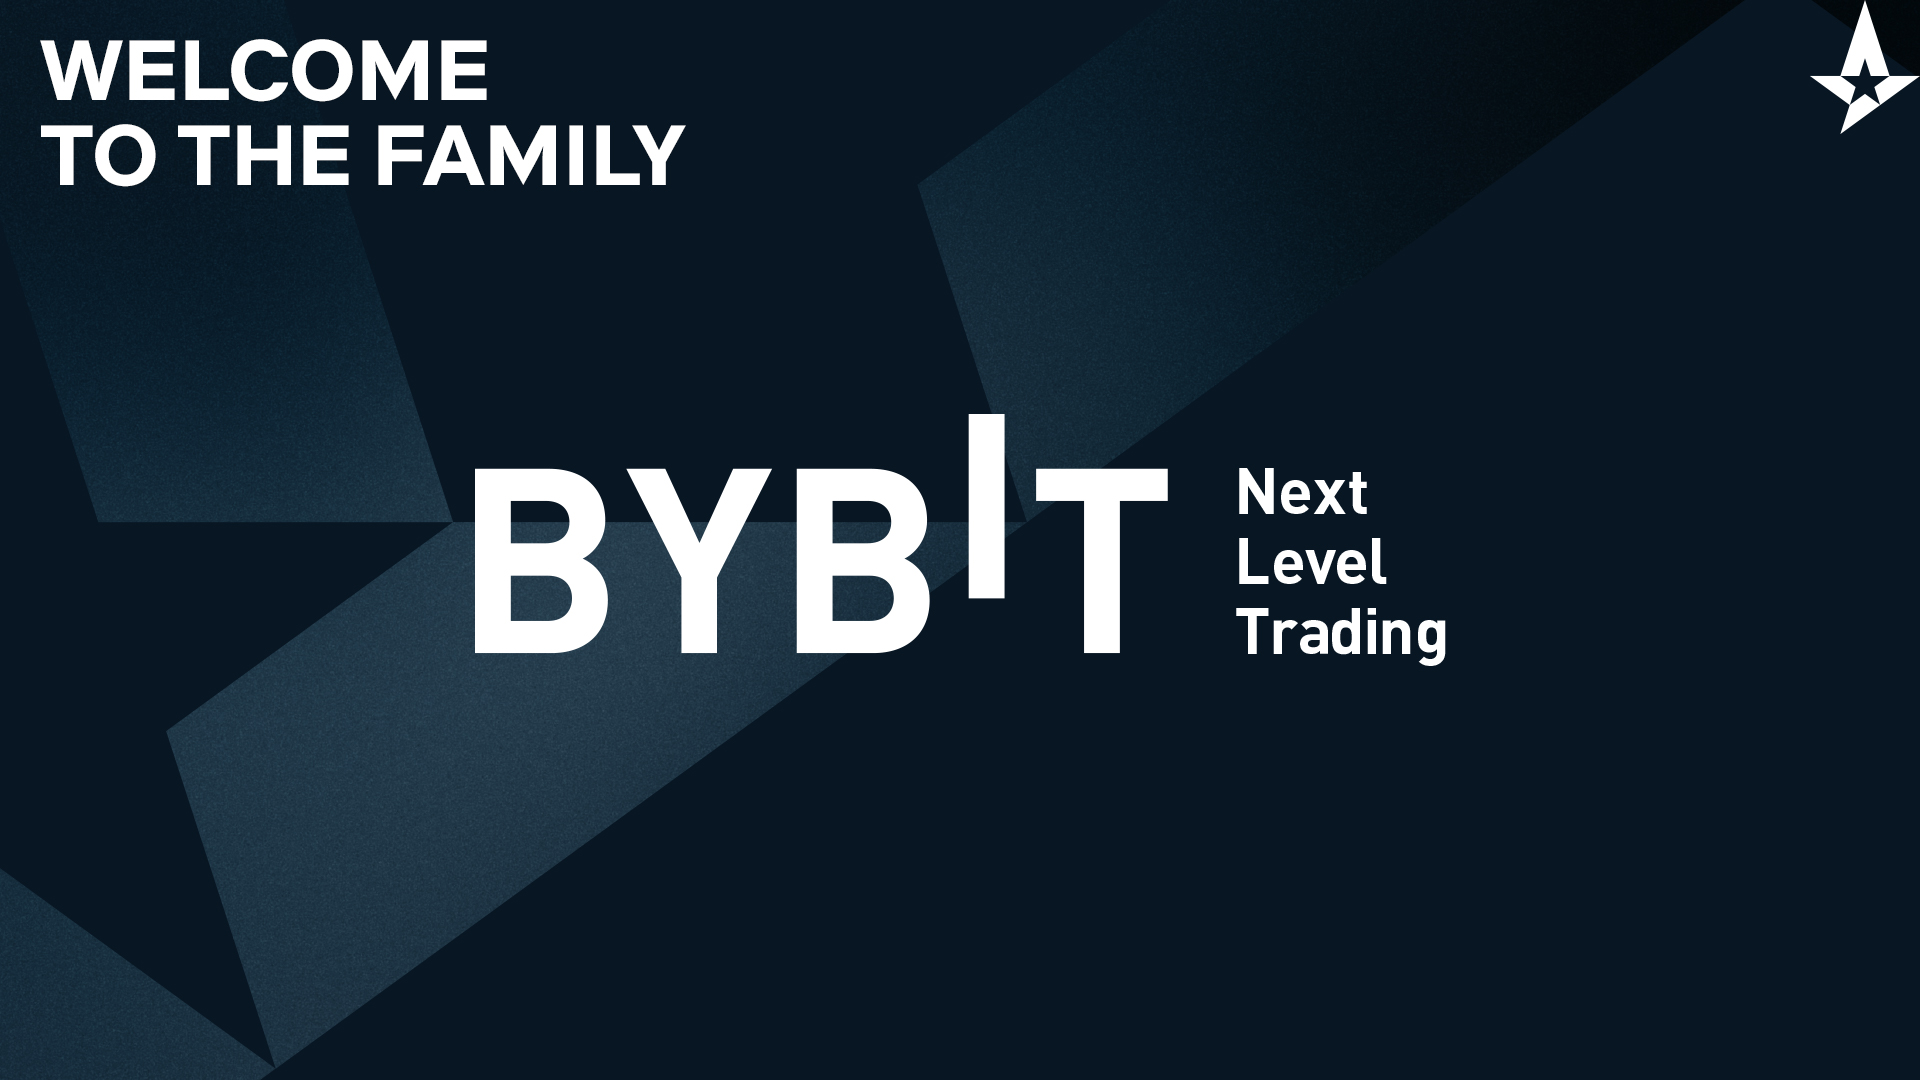 Astralis Enters New Main Partnership Deal With Crypto Exchange Bybit